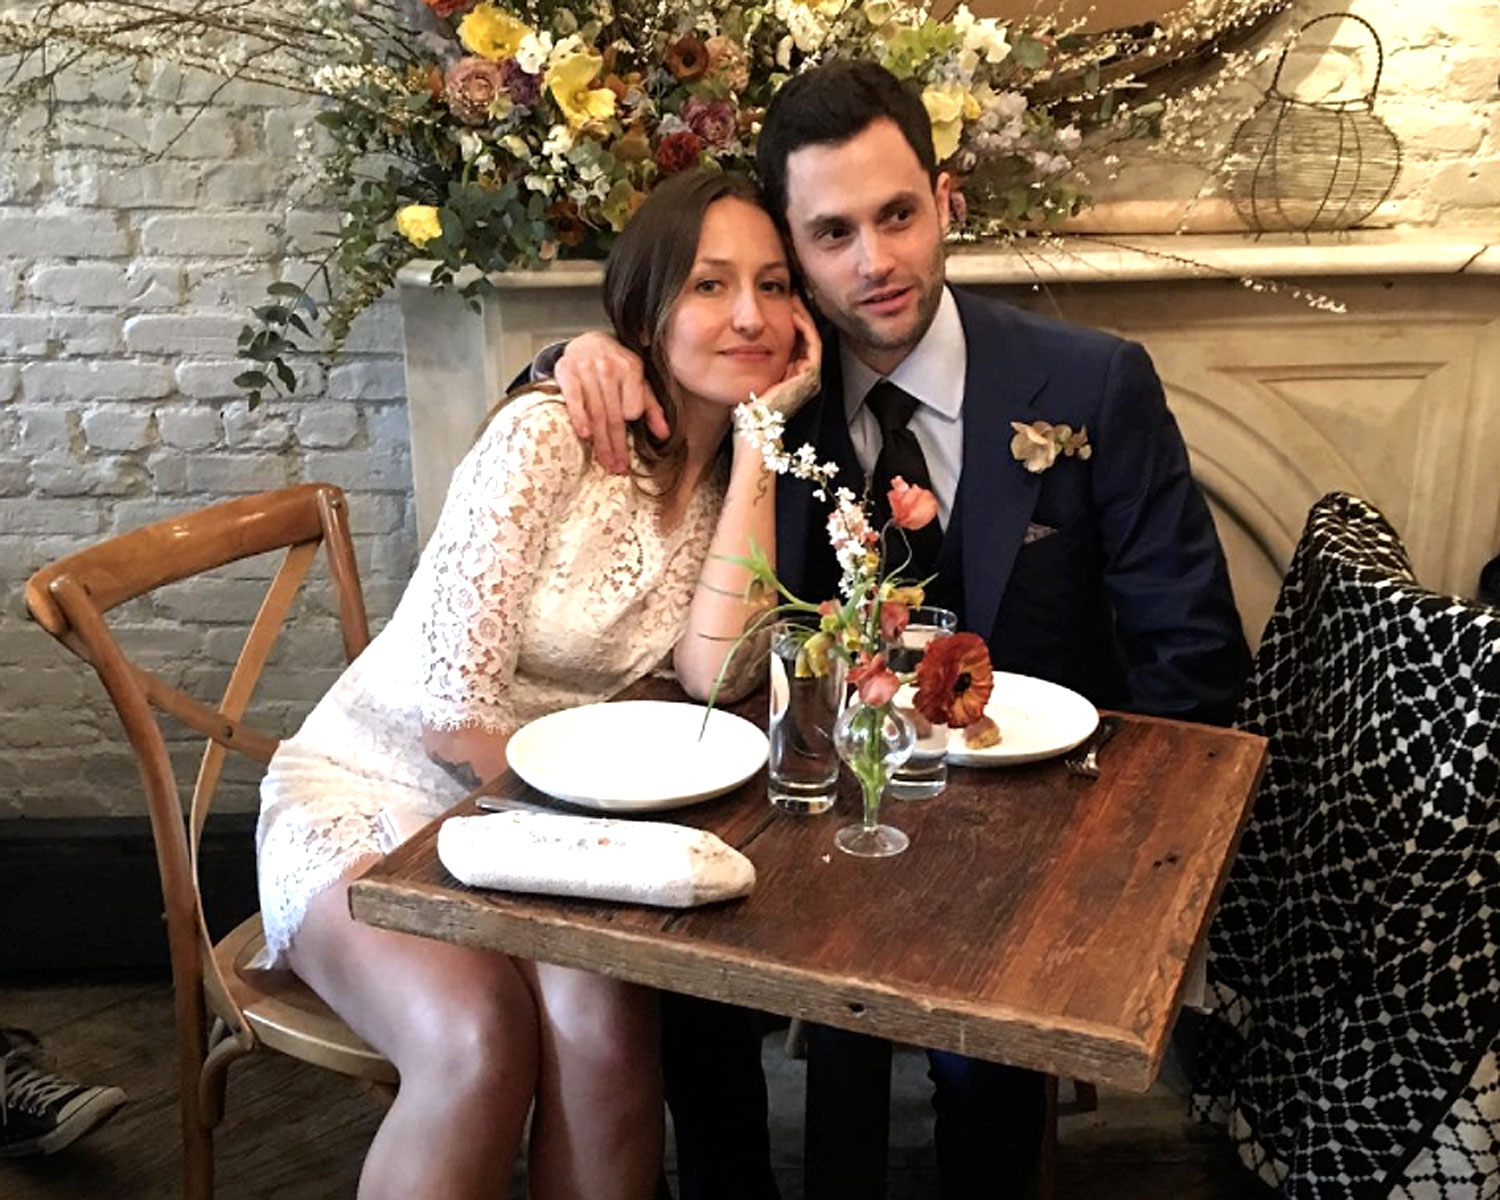 Penn Badgley Domino Kirke S Second Wedding Photos